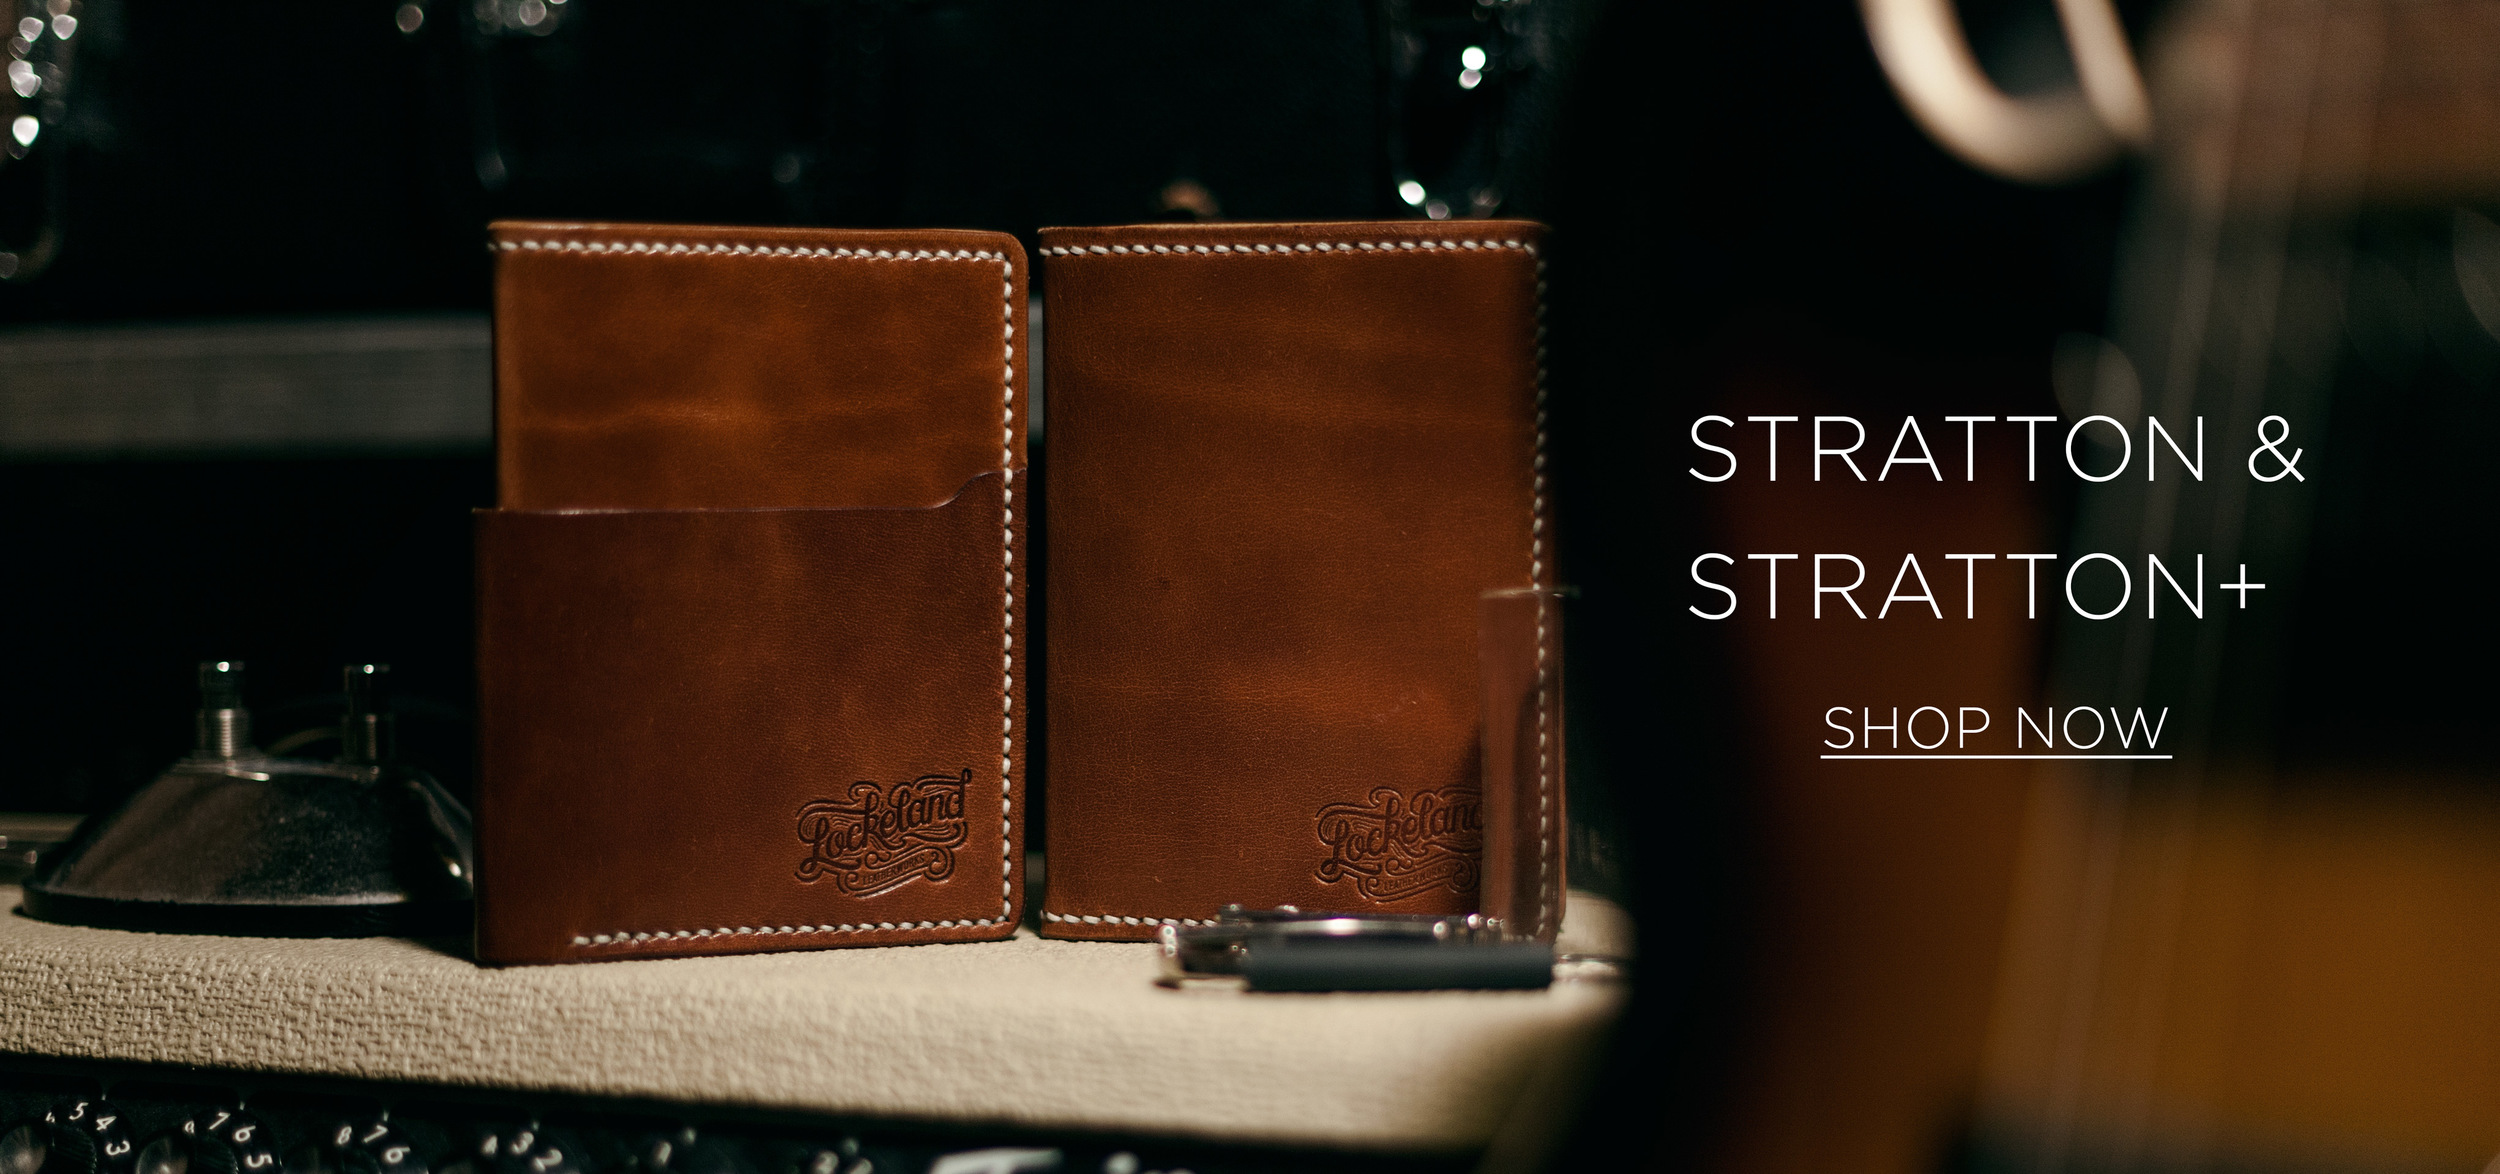 Stratton & Stratton+ Wallet Slider